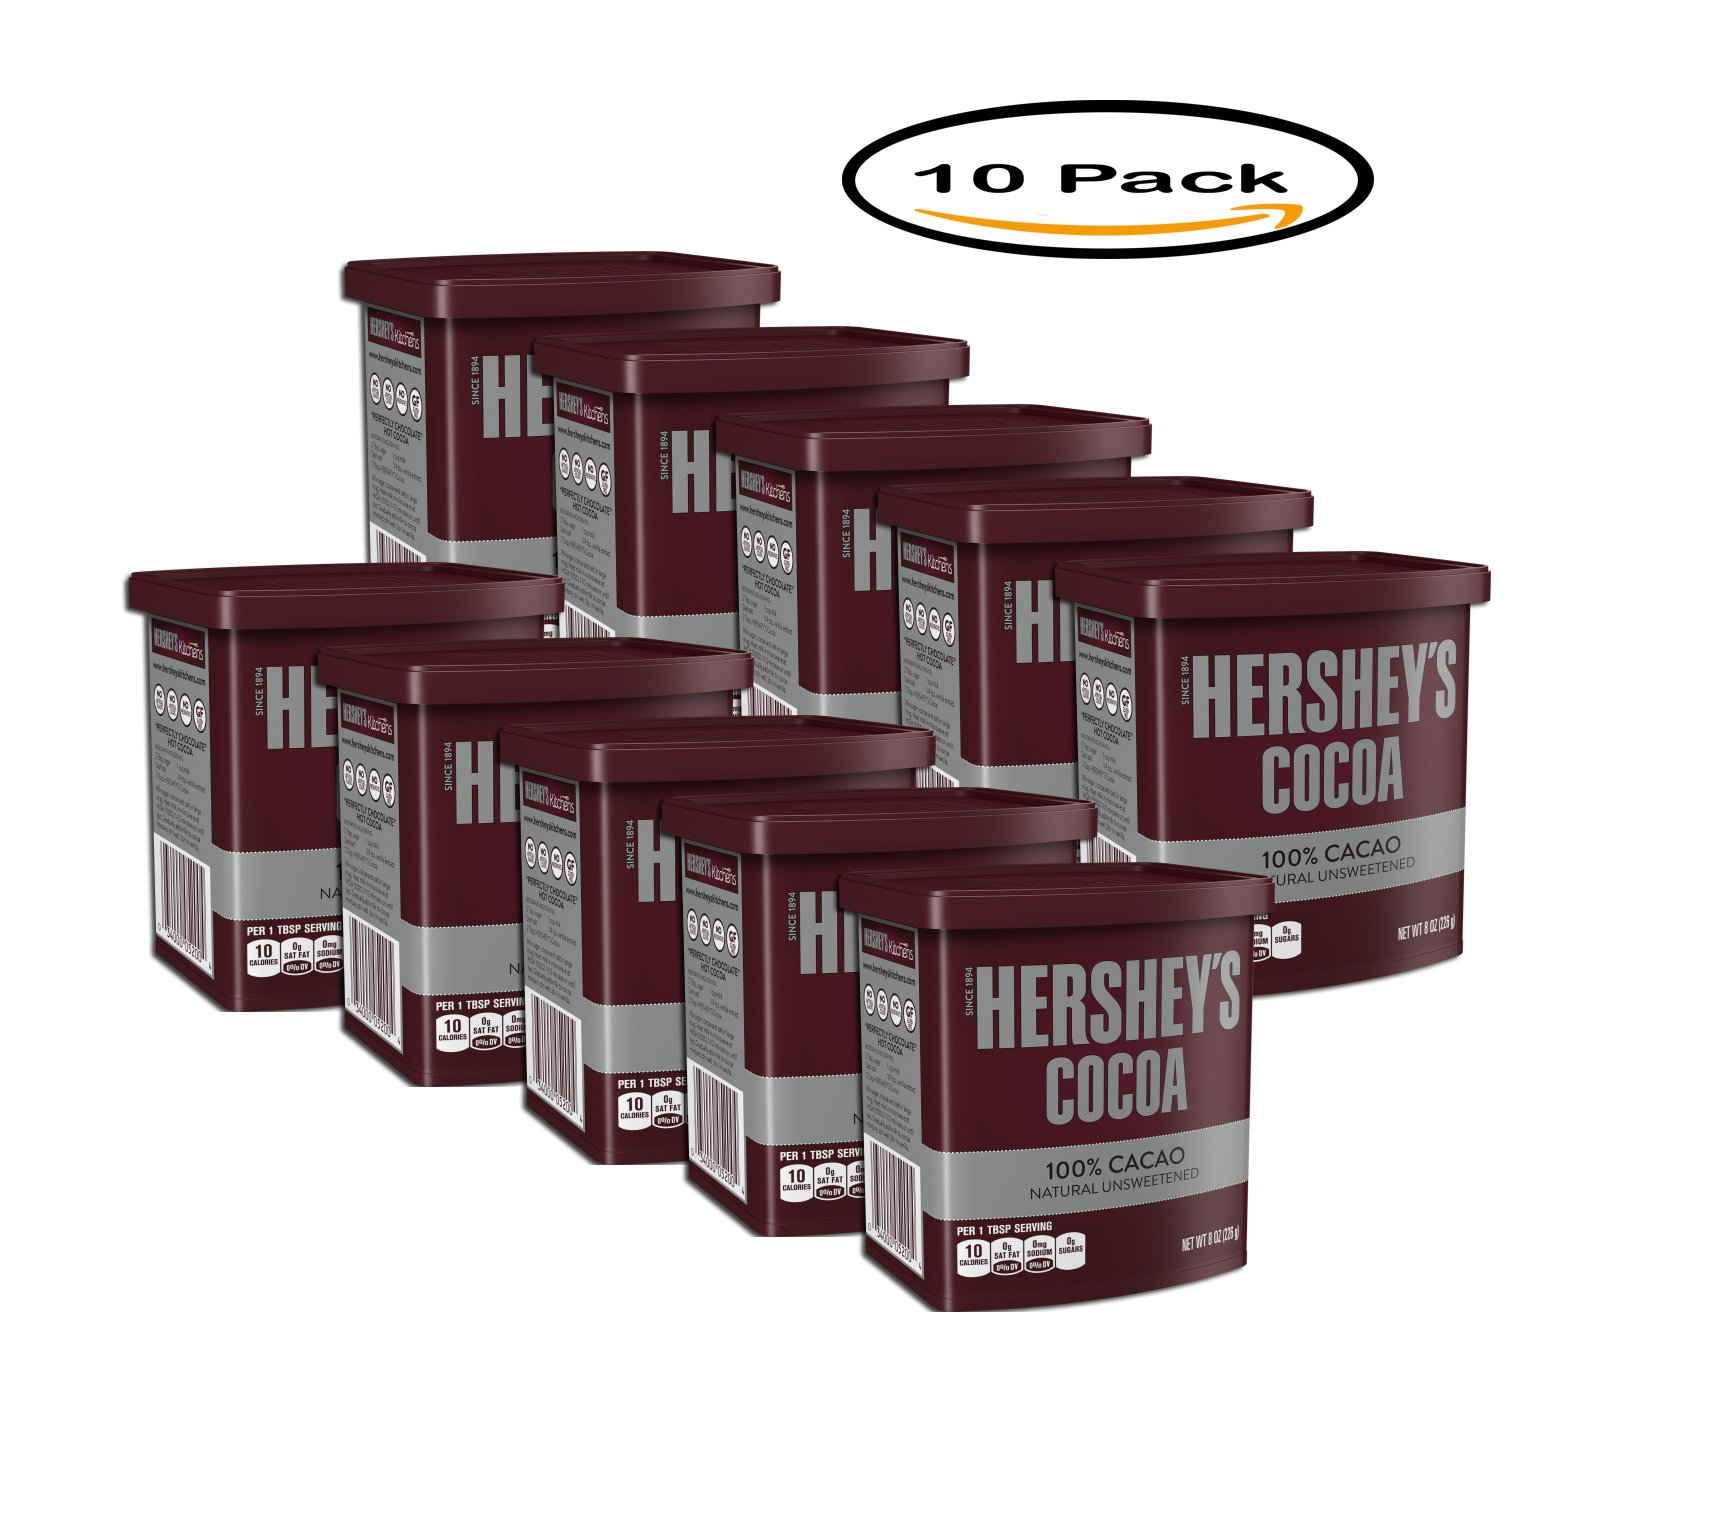 PACK OF 10 - Hershey's® Naturally Unsweetened Cocoa 8 oz. Canister